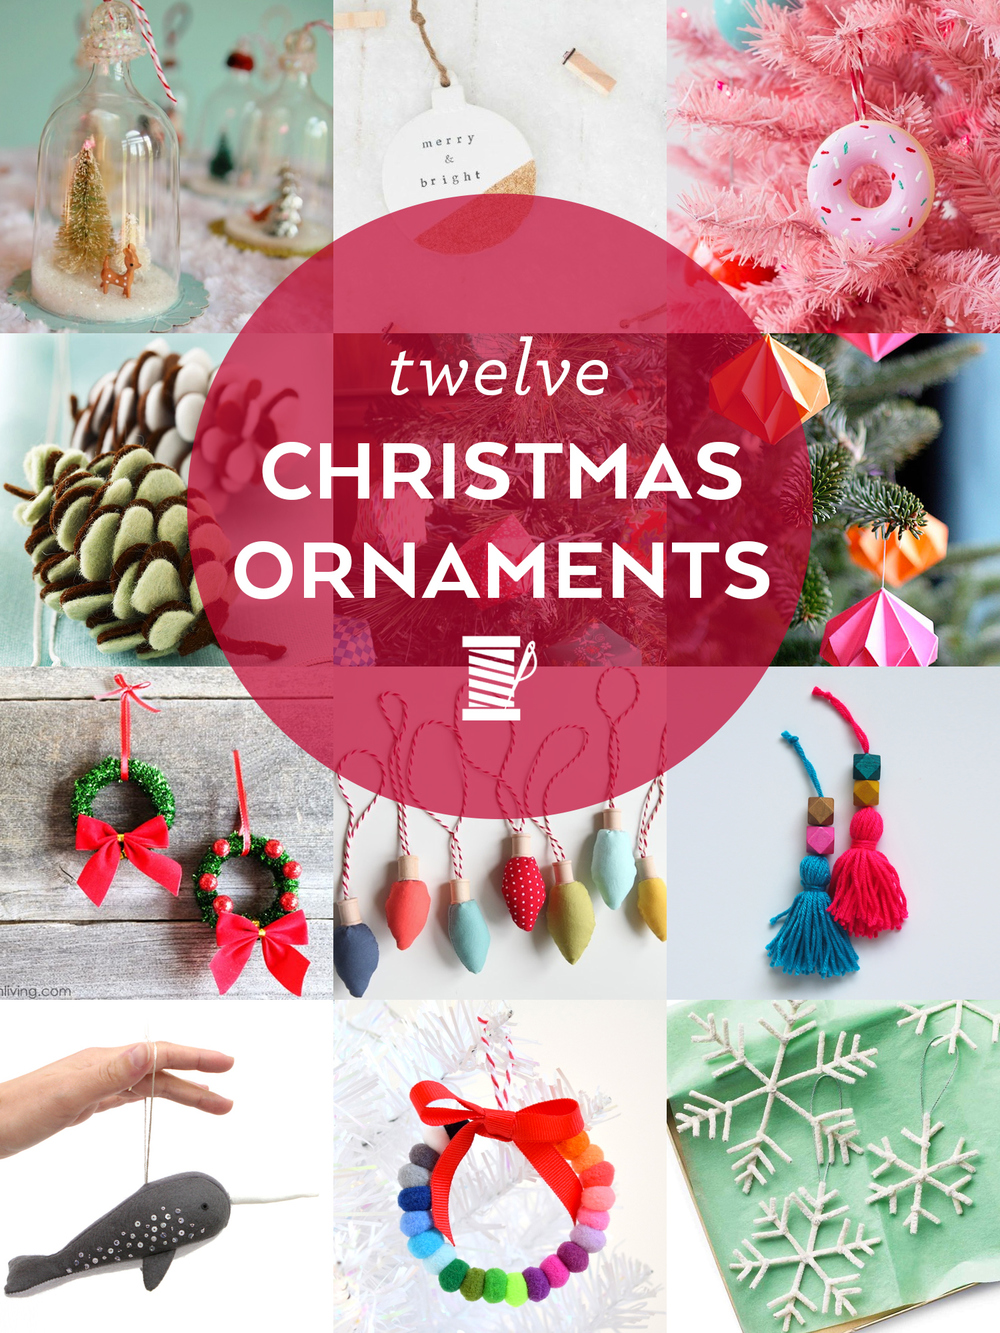 12 DIY Christmas Ornaments to Make This Weekend | Sew DIY